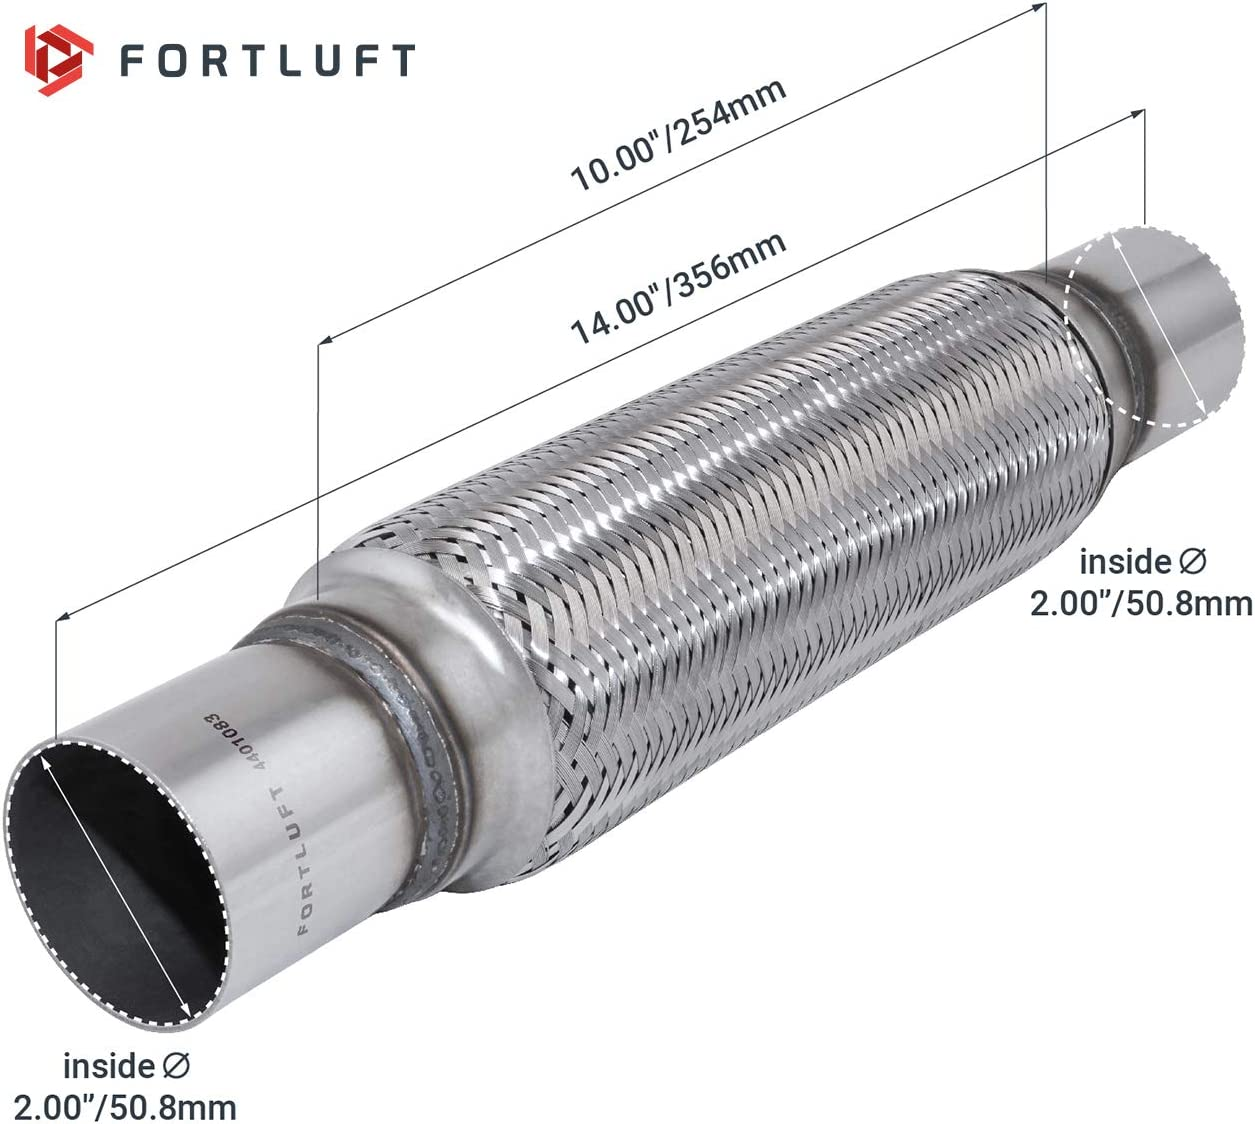 FORTLUFT Exhaust Flex Connector With Extension Pipes Stainless Steel 1.75x4.00x8.00//45x102x203mm